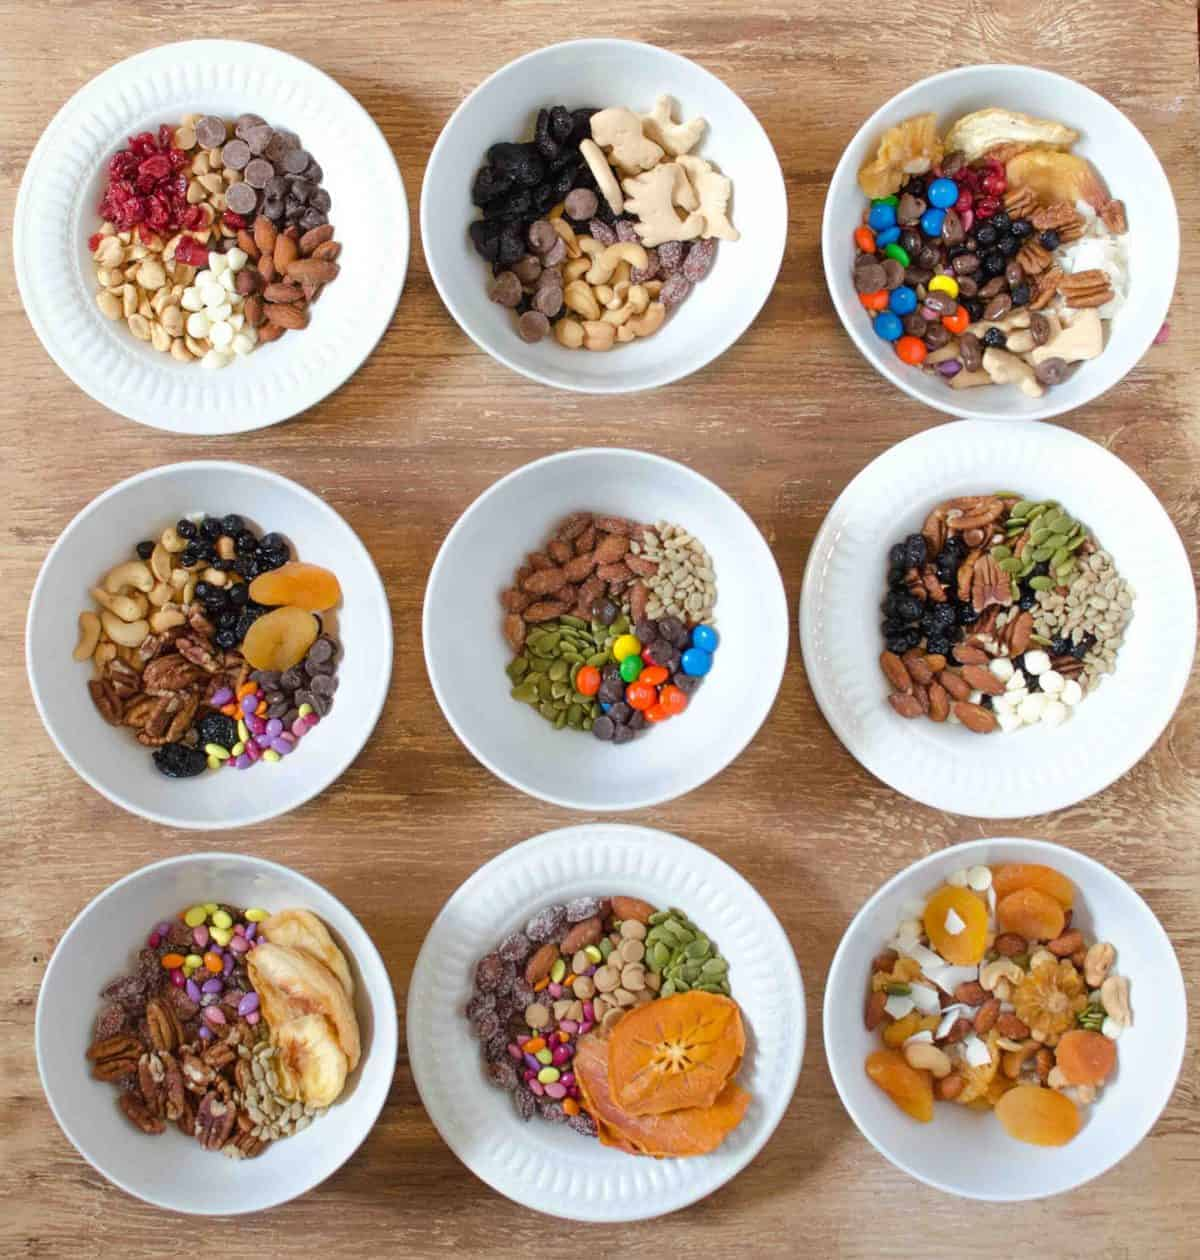 Make a DIY Trail Mix station for your kids to create their own trail mix combinations to snack on all summer long.